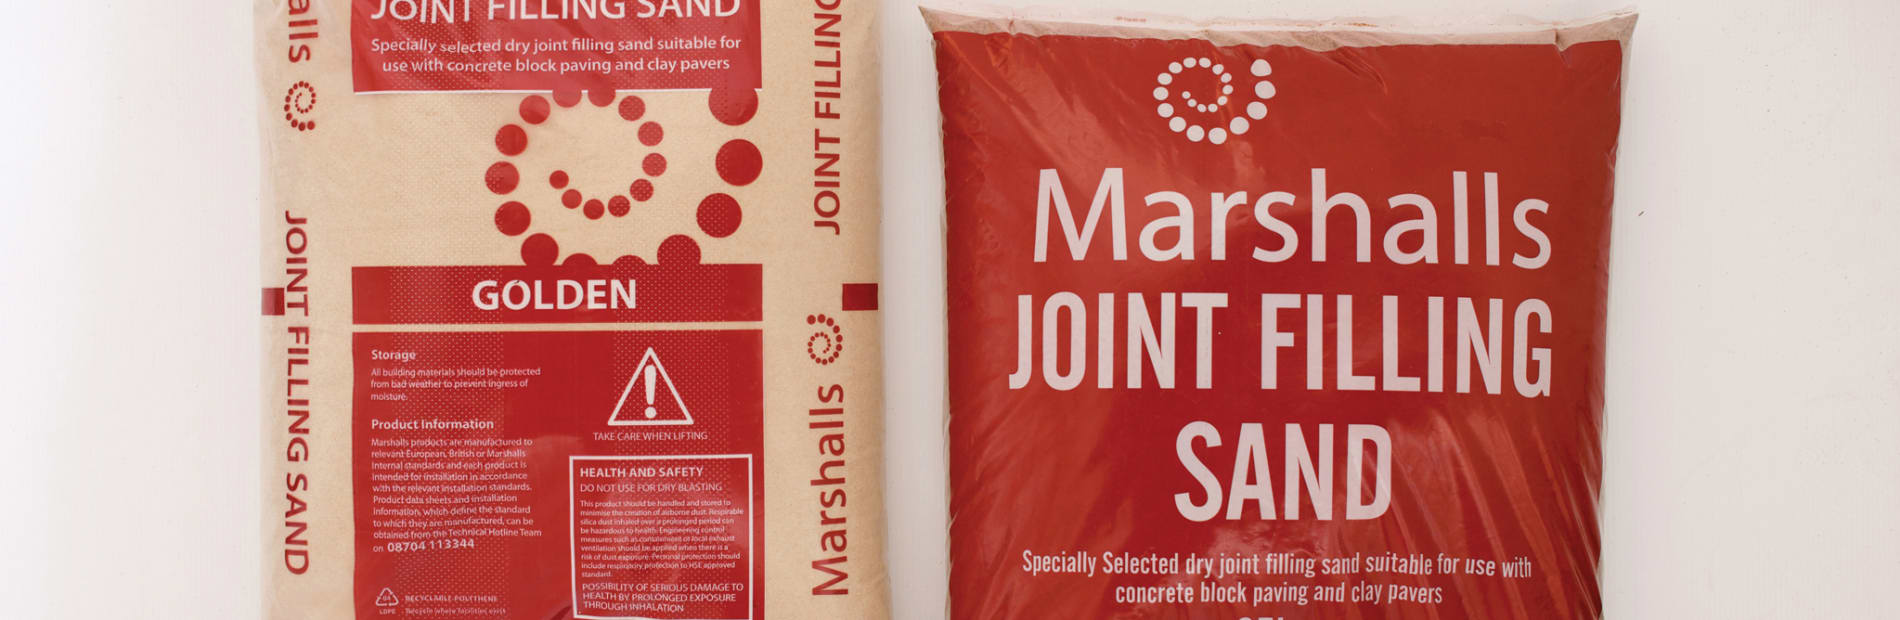 bag of jointing sand